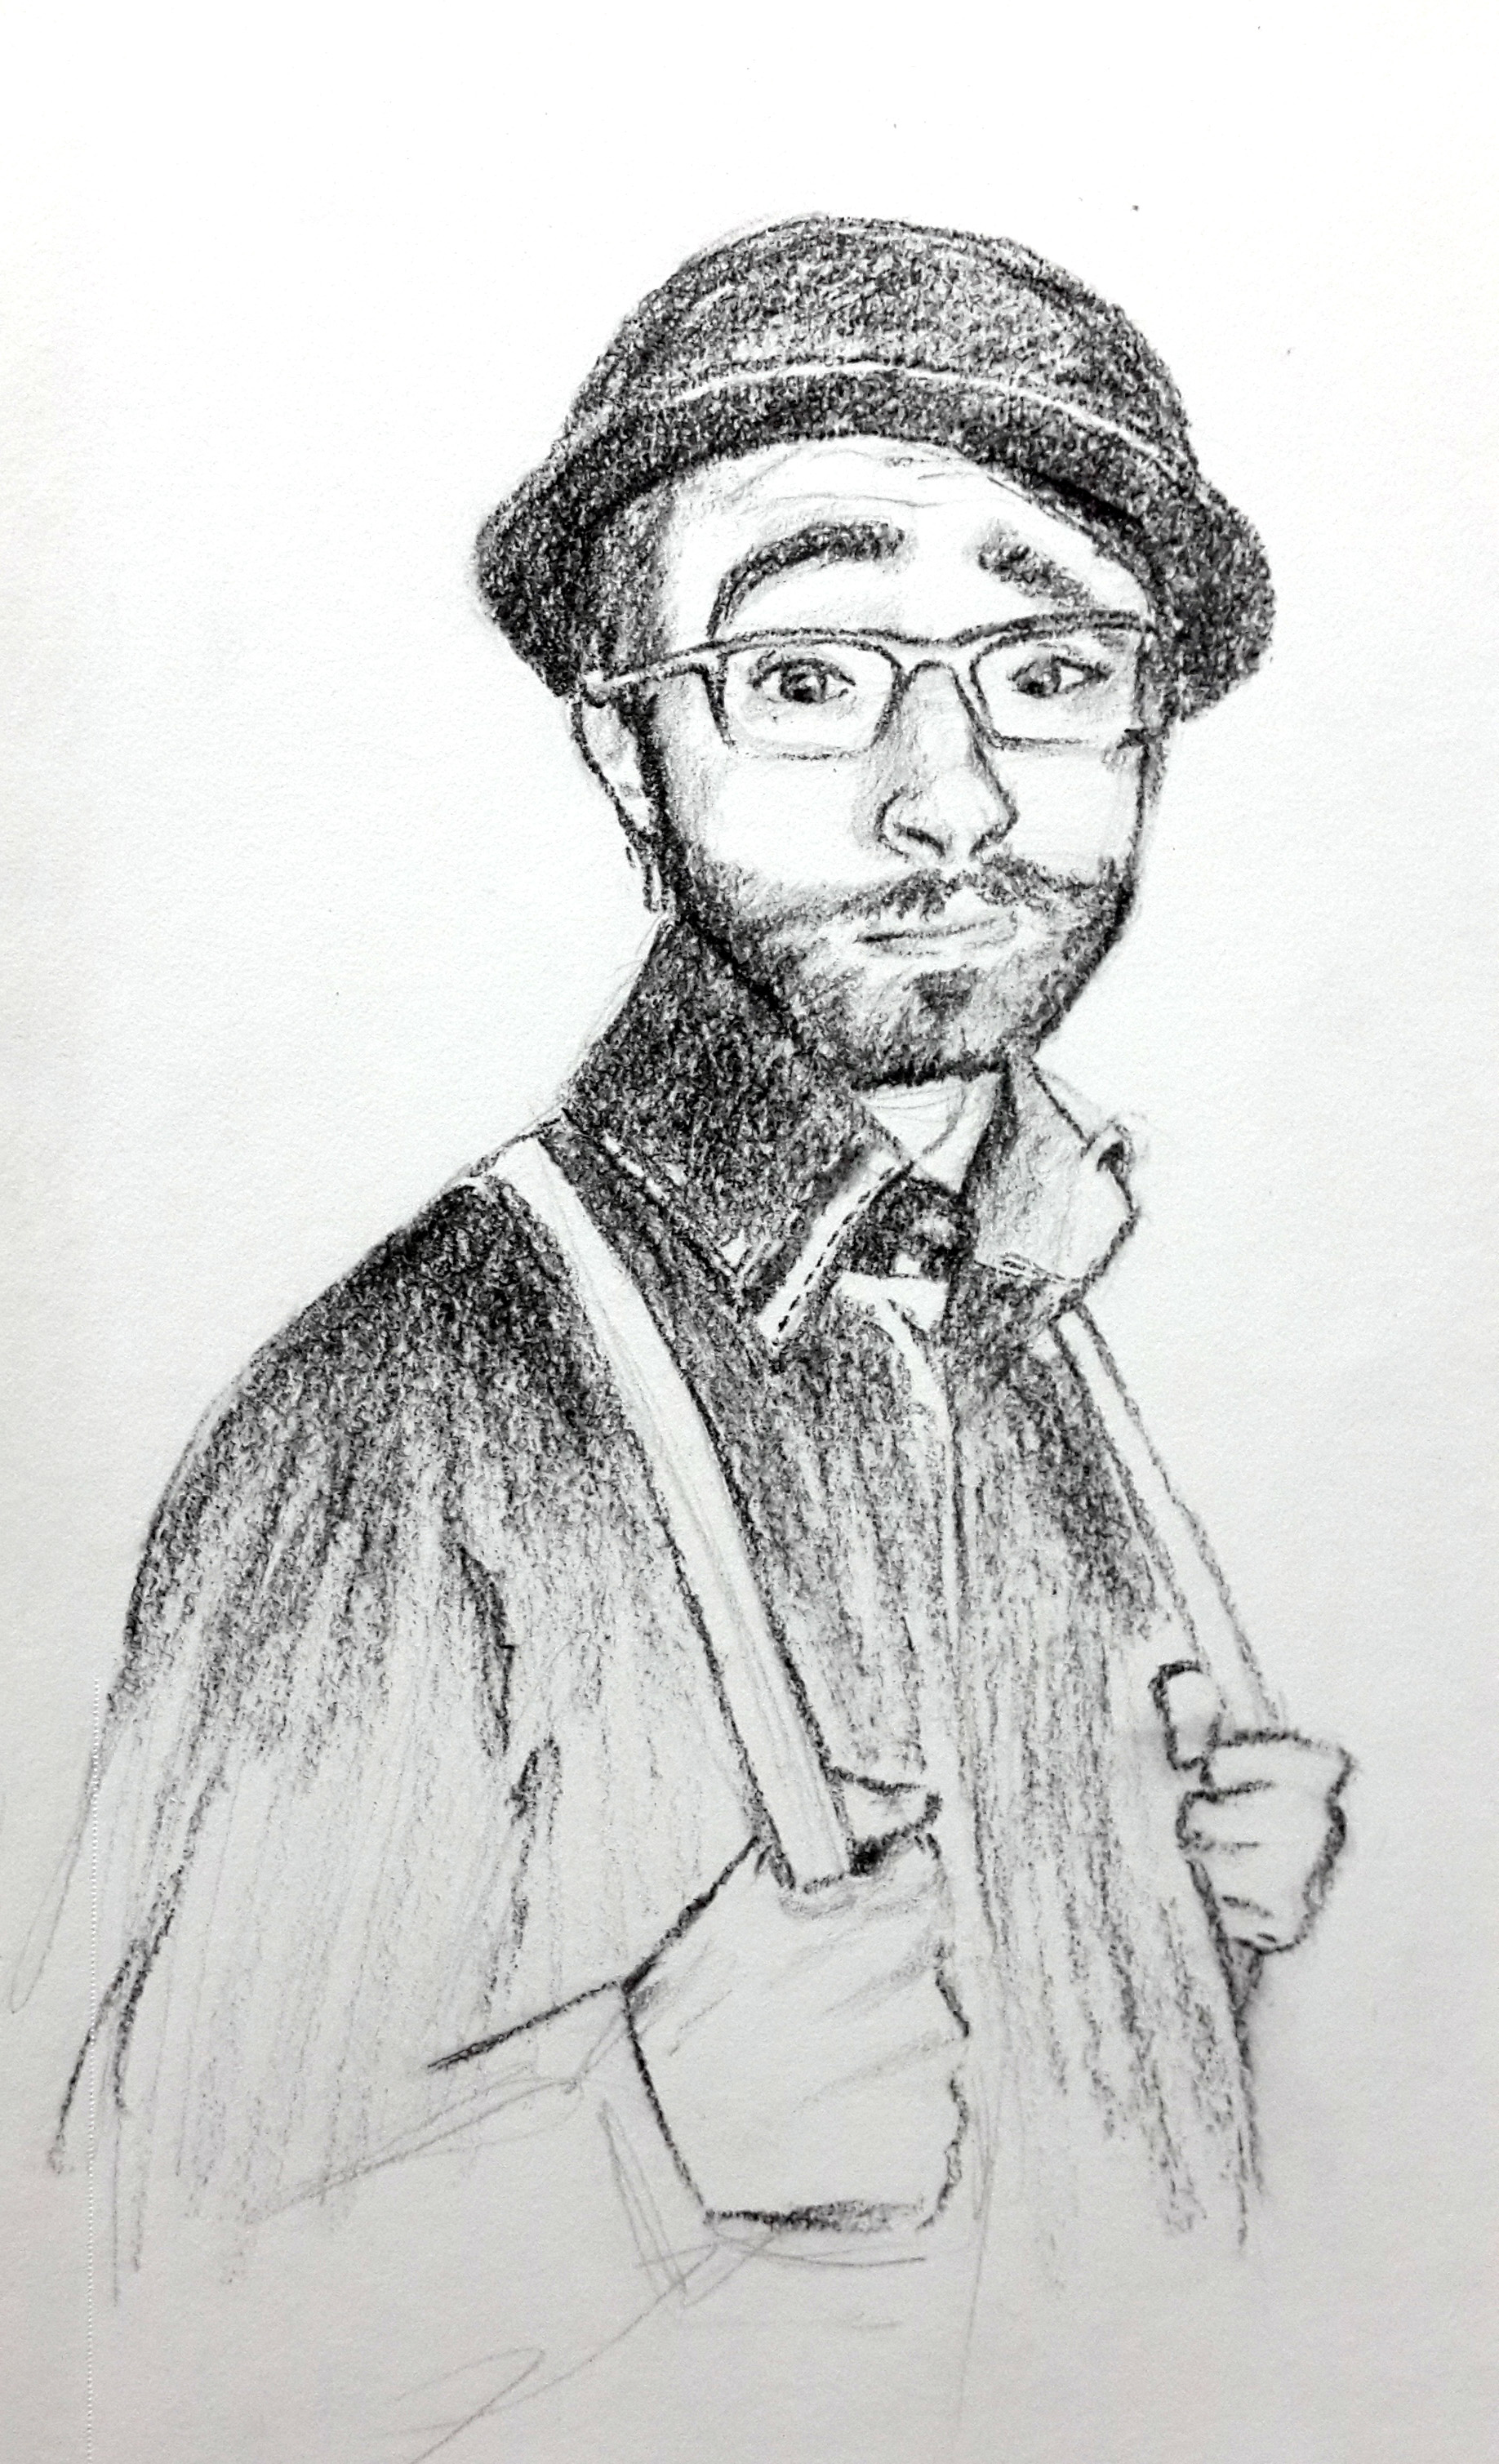 charcoal drawing of a retro looking man ready to dance